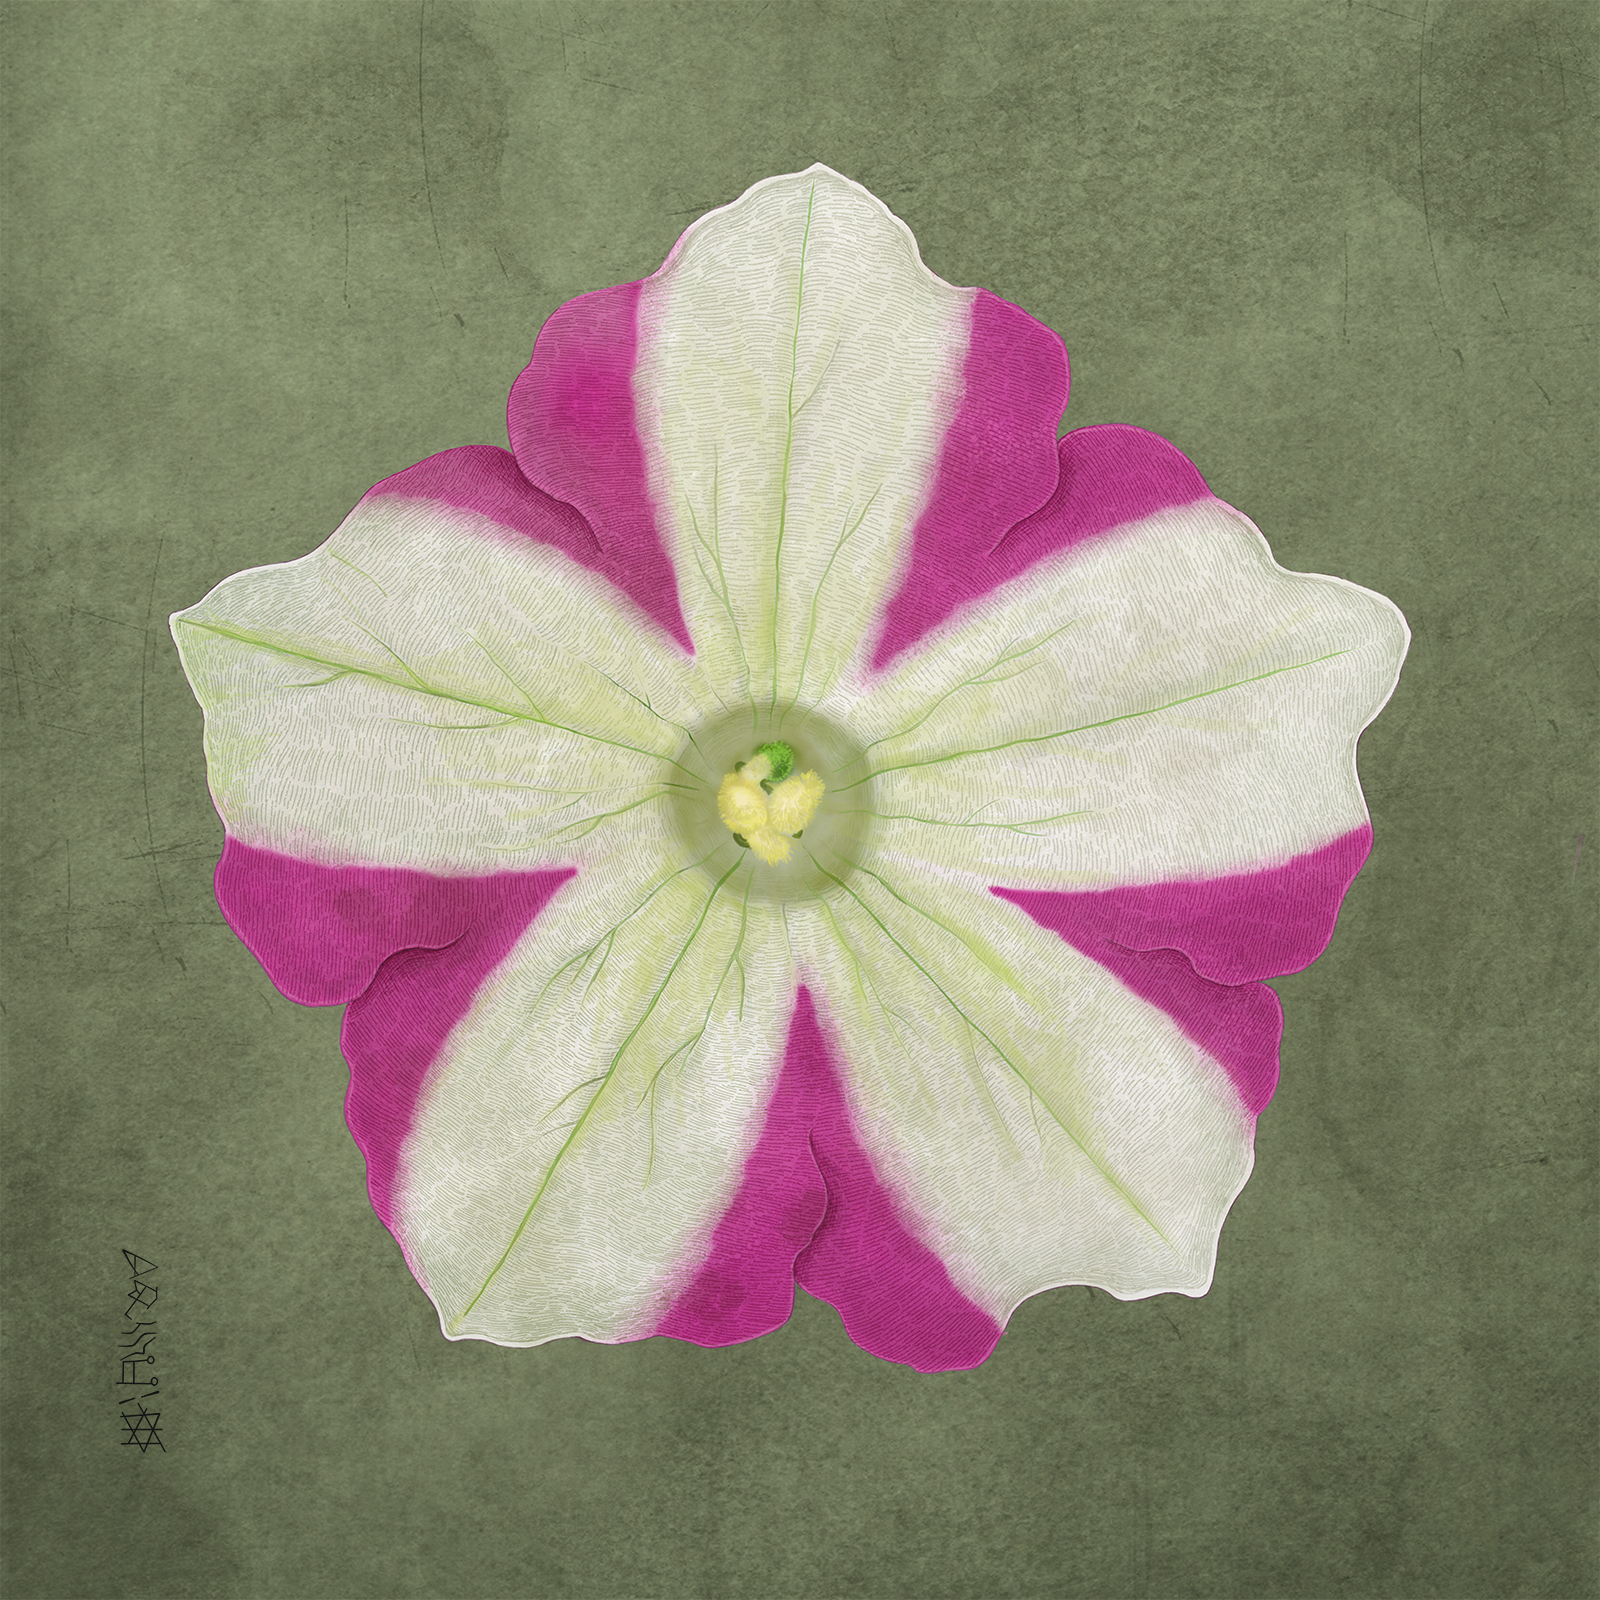 Atlasi (Petunia), 60×60cm 400dpi, Digtal Painting, Winter 2016